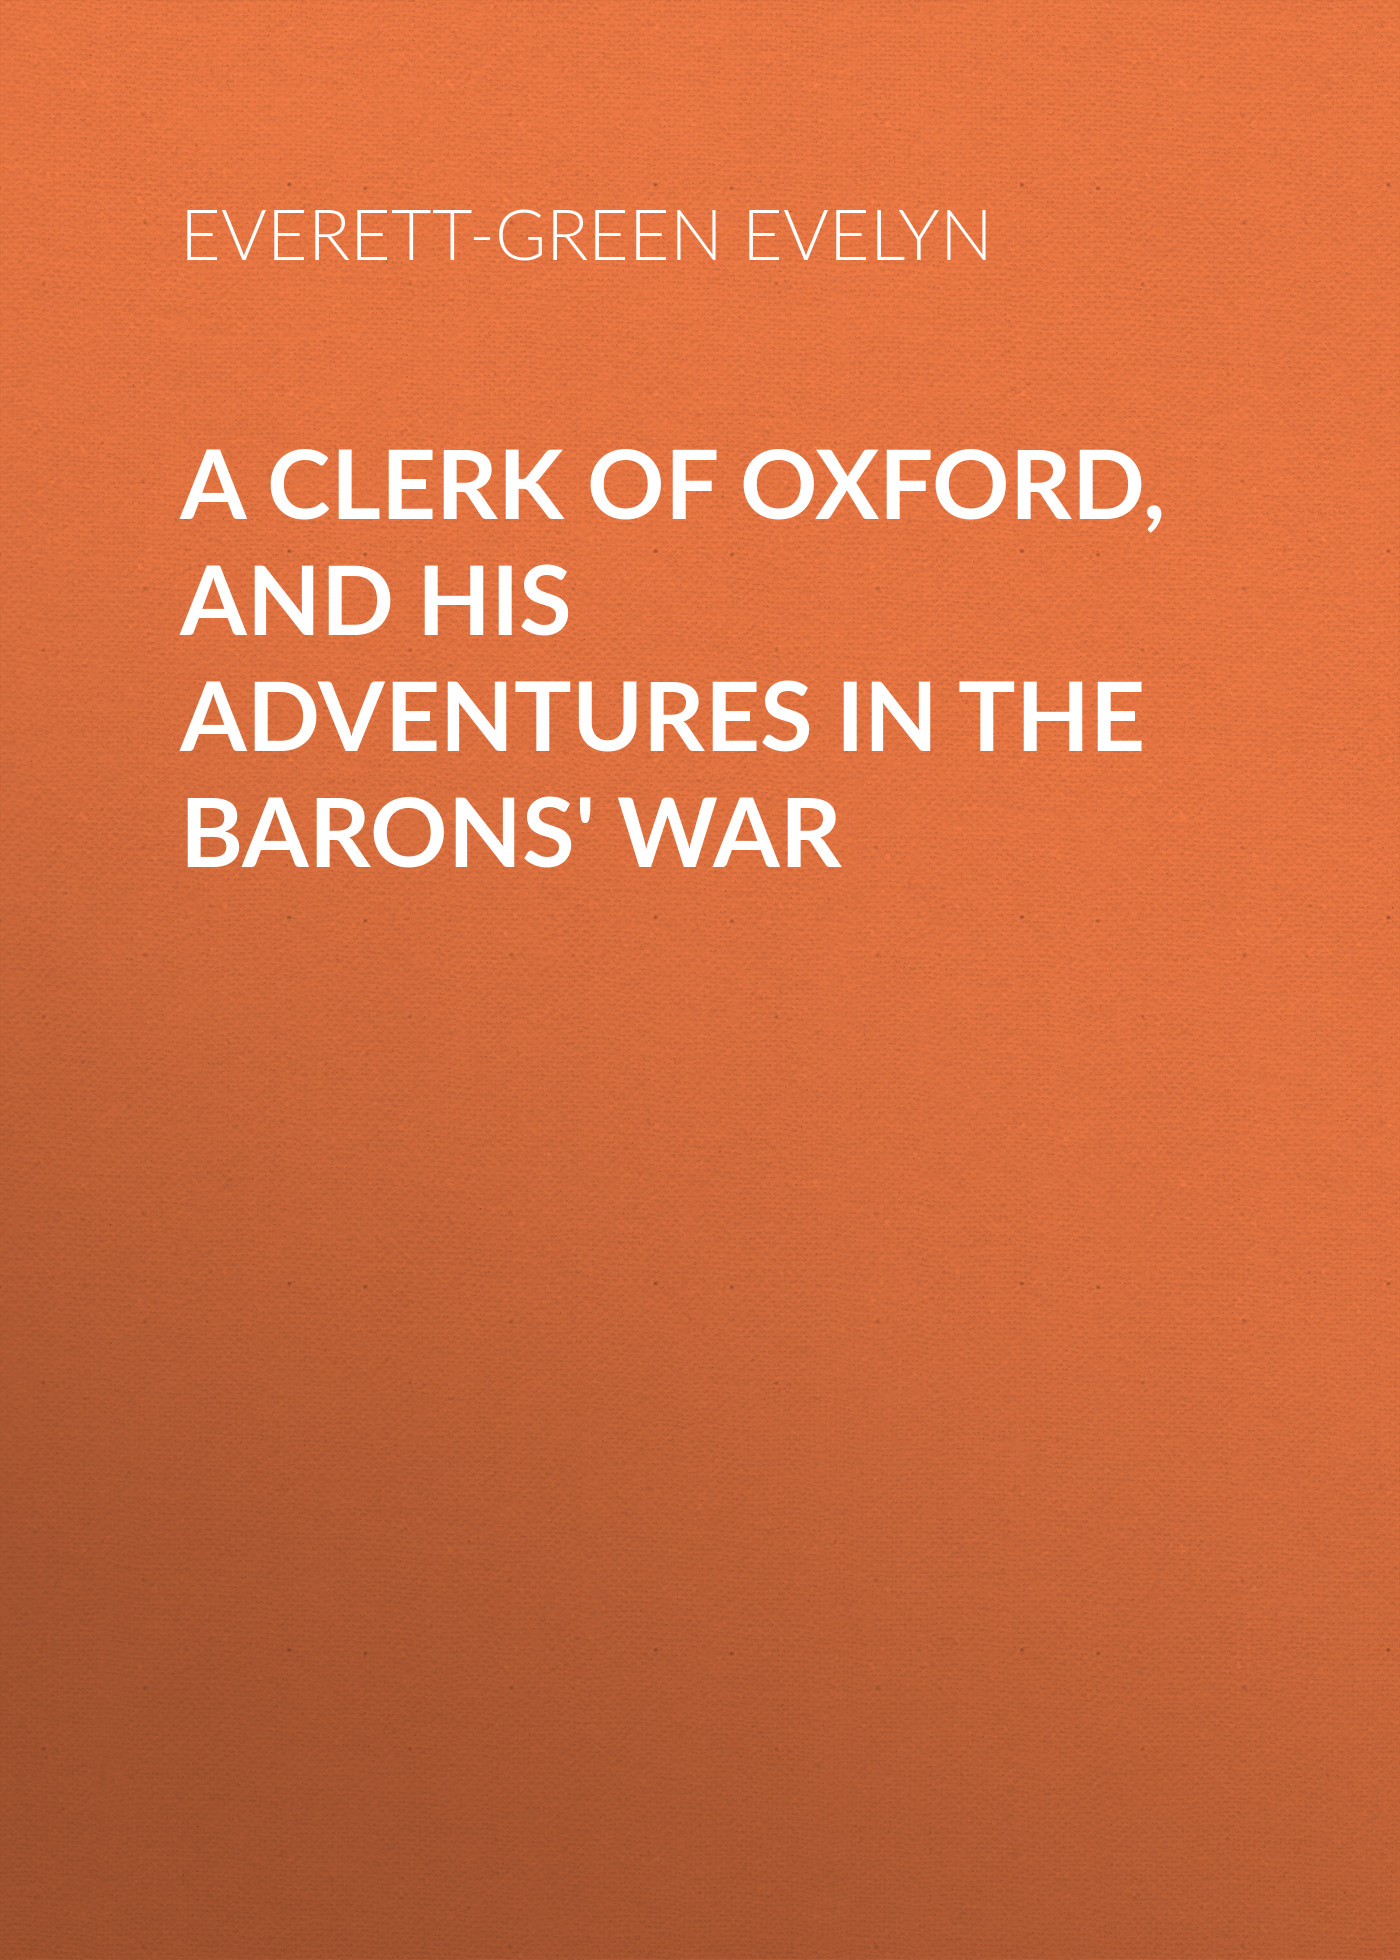 лучшая цена Everett-Green Evelyn A Clerk of Oxford, and His Adventures in the Barons' War